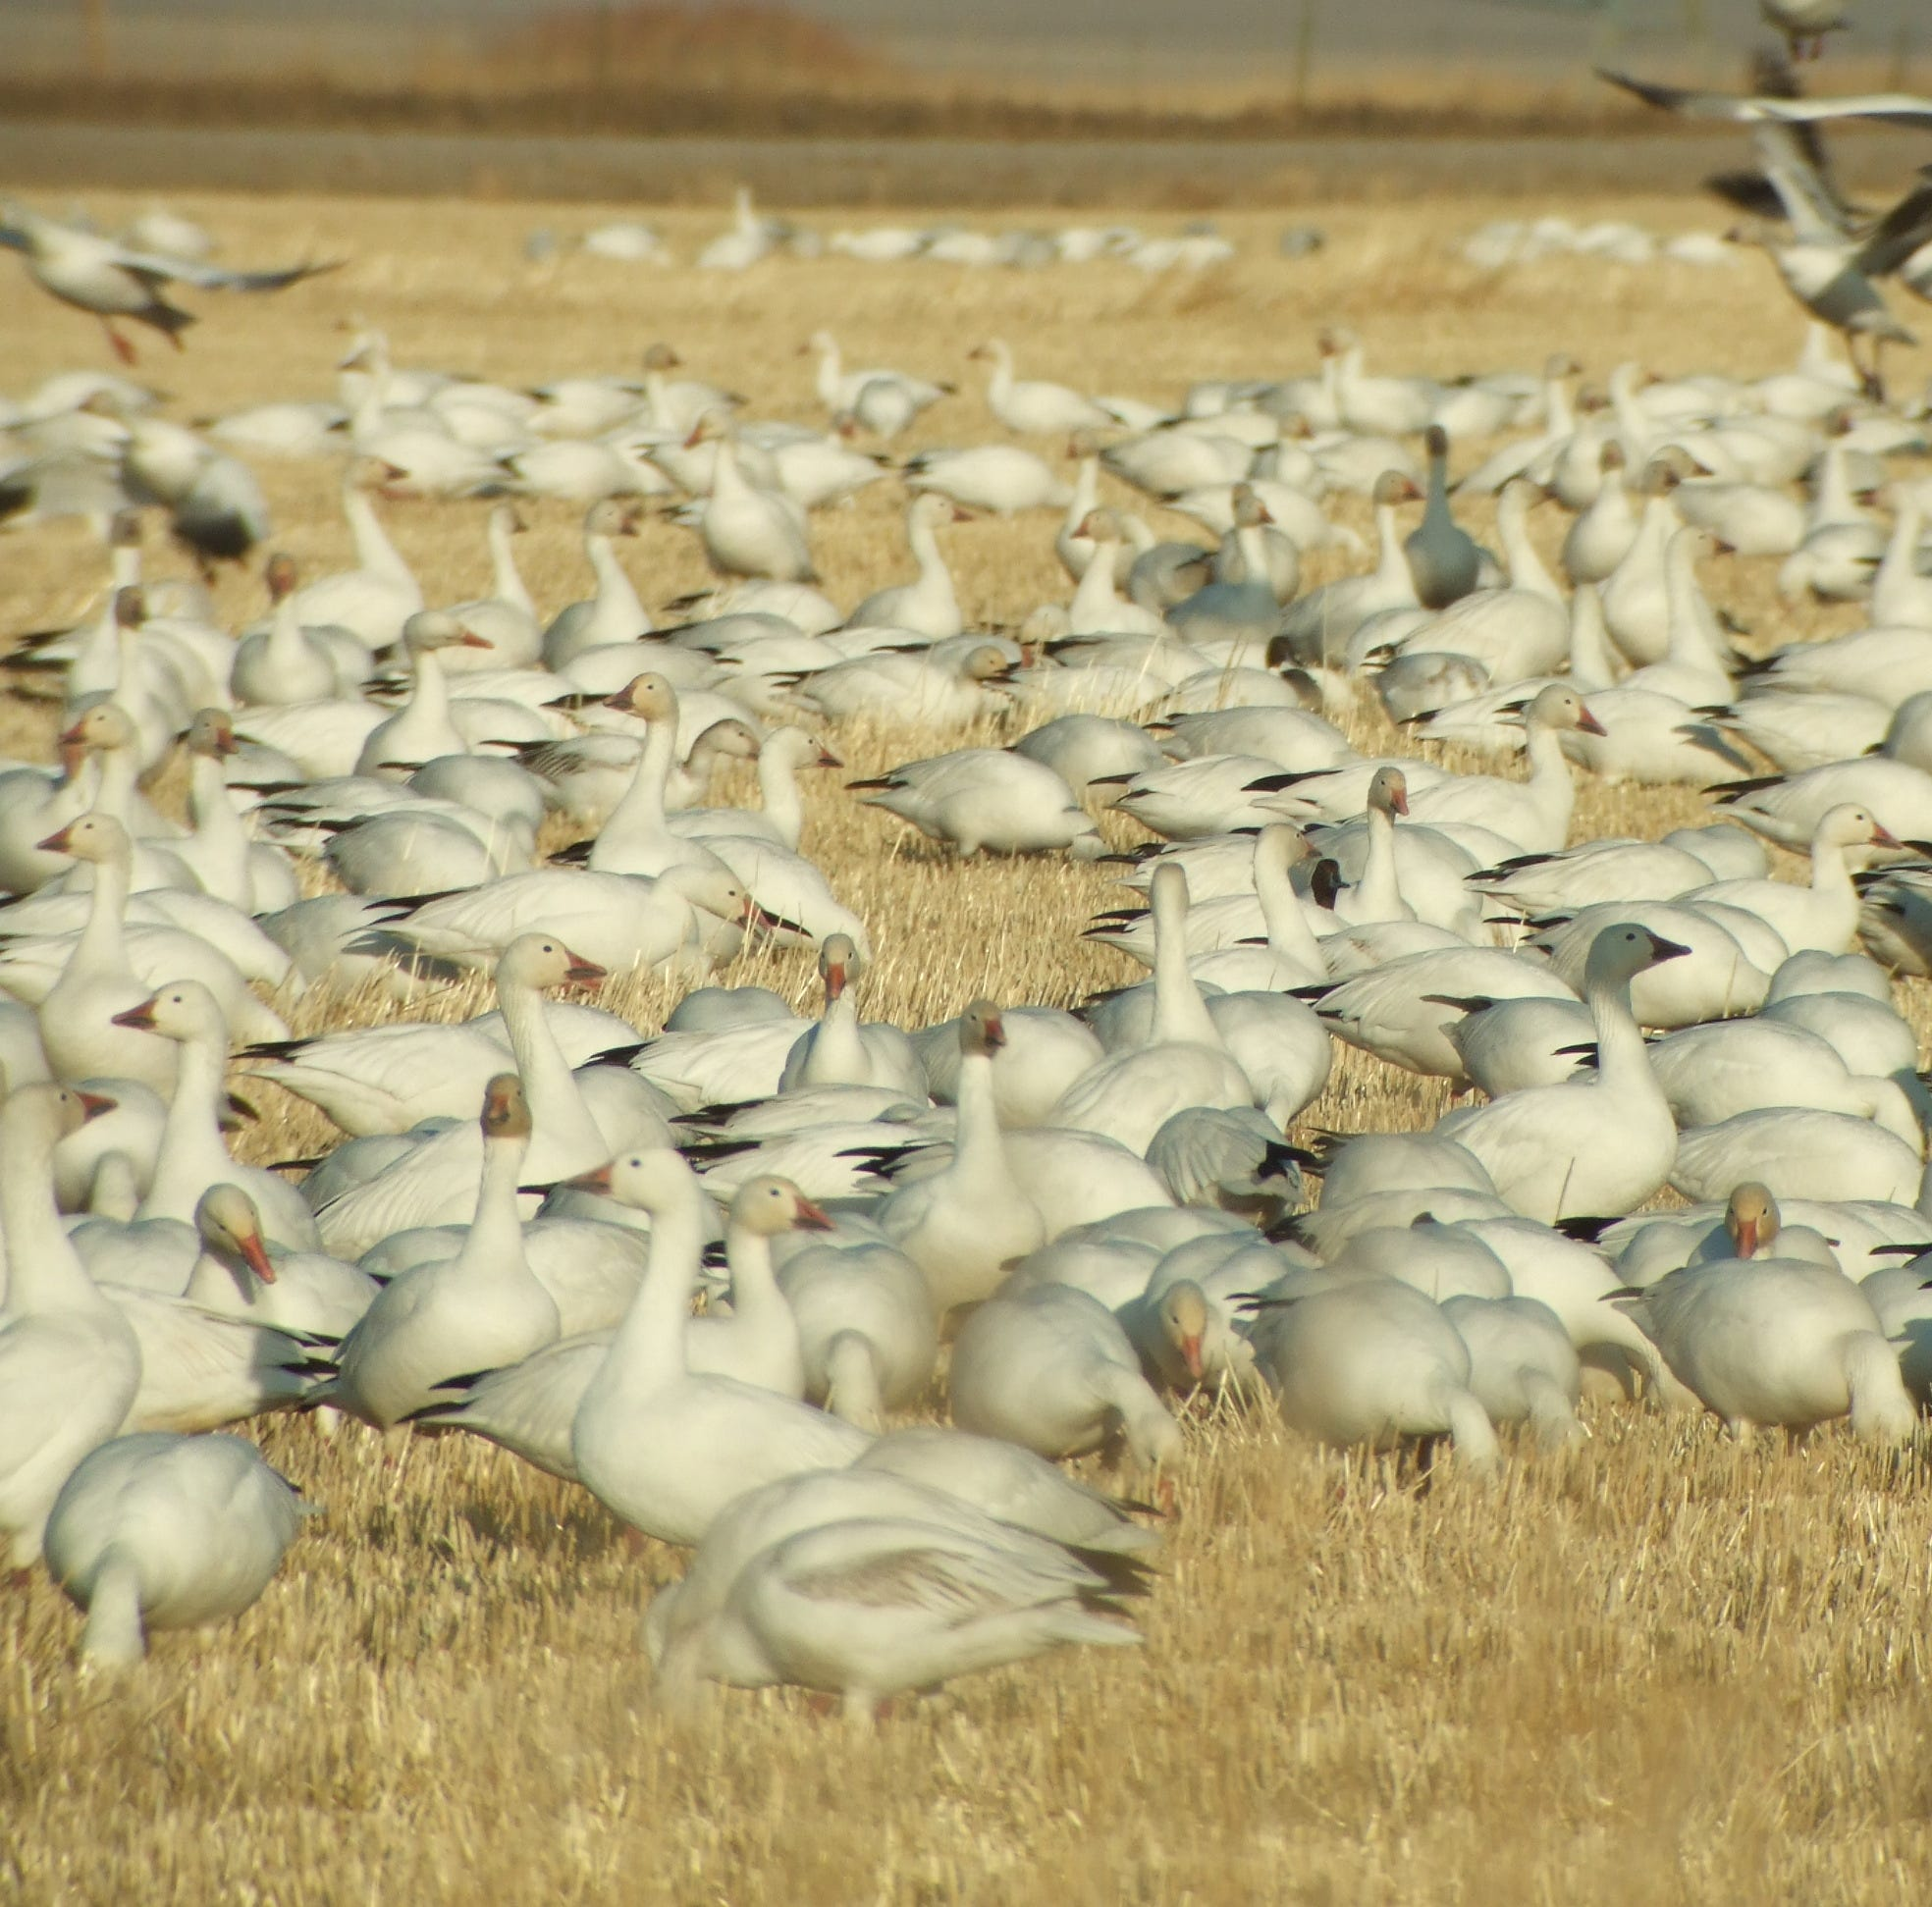 Early birds in 'remarkable' migration find Montana's Freezout Lake frozen